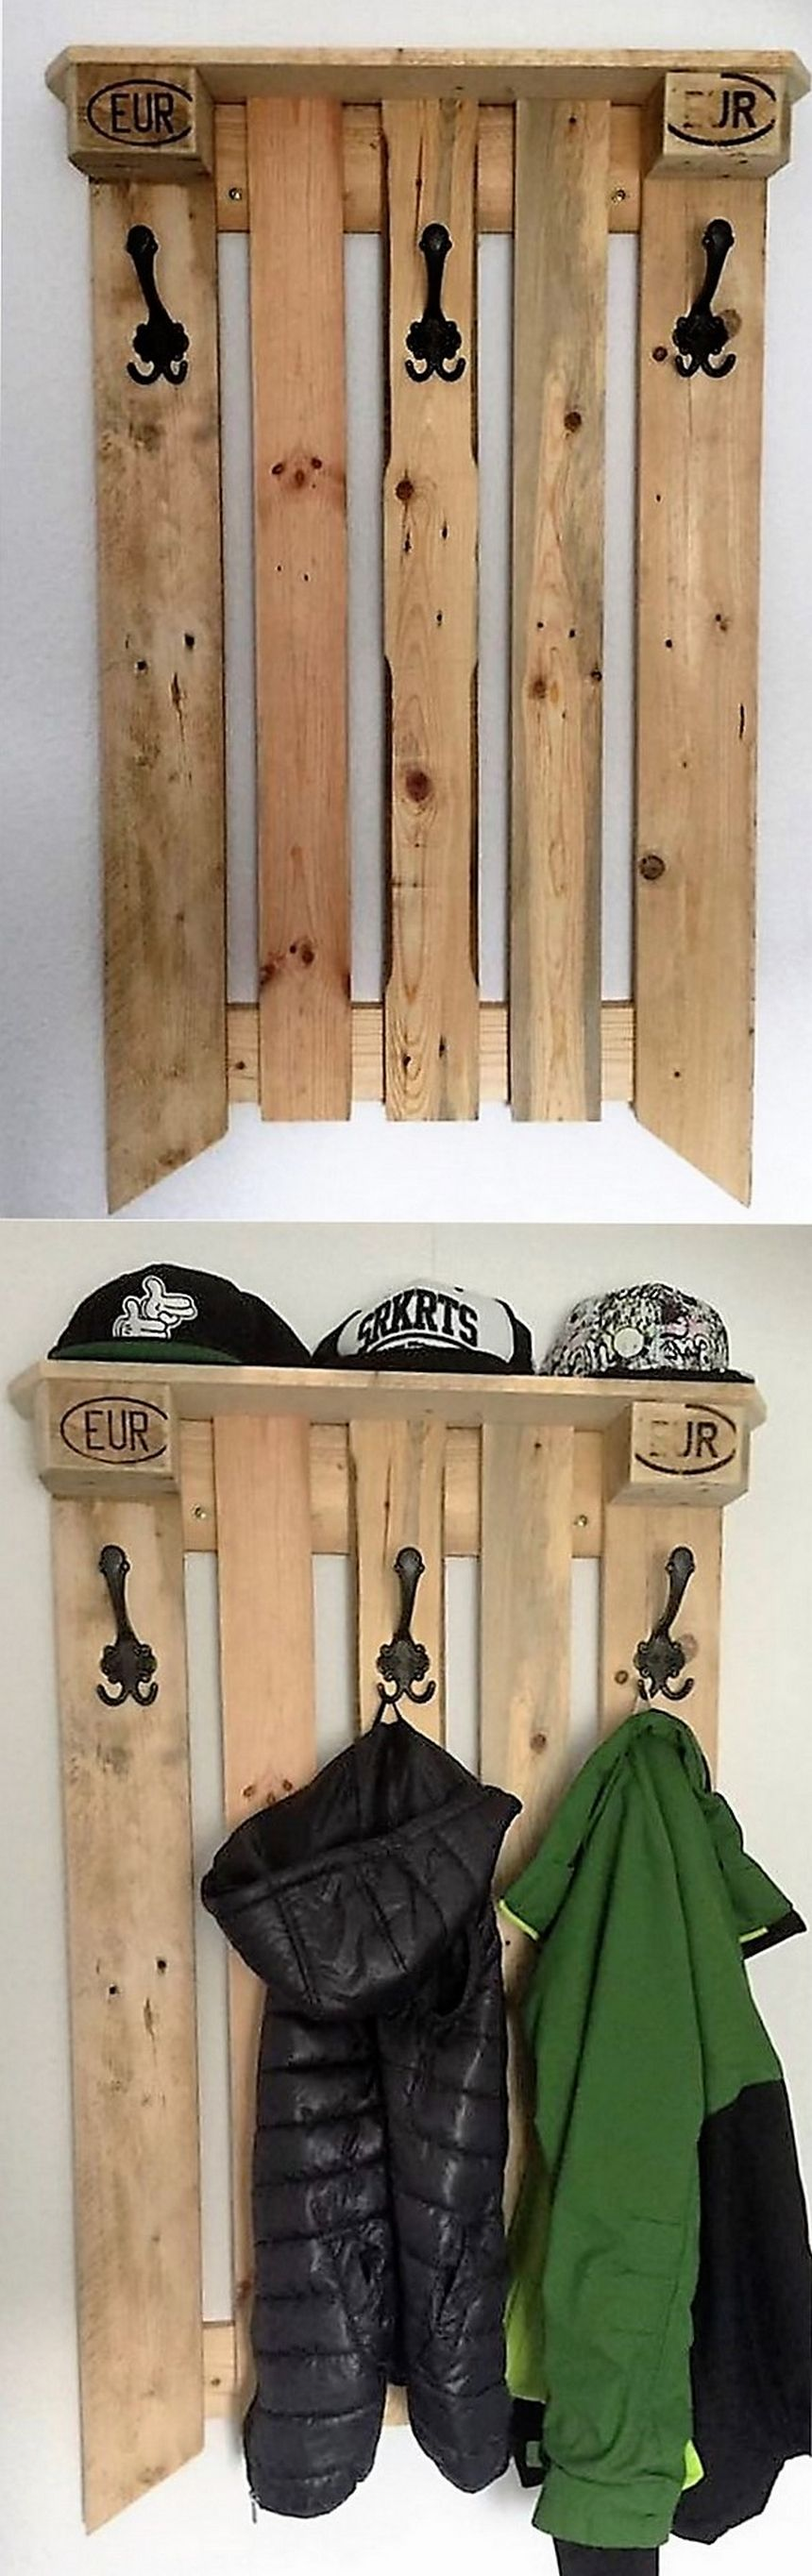 Ideas To Give Wood Pallets Second Life Paletten Obstkisten